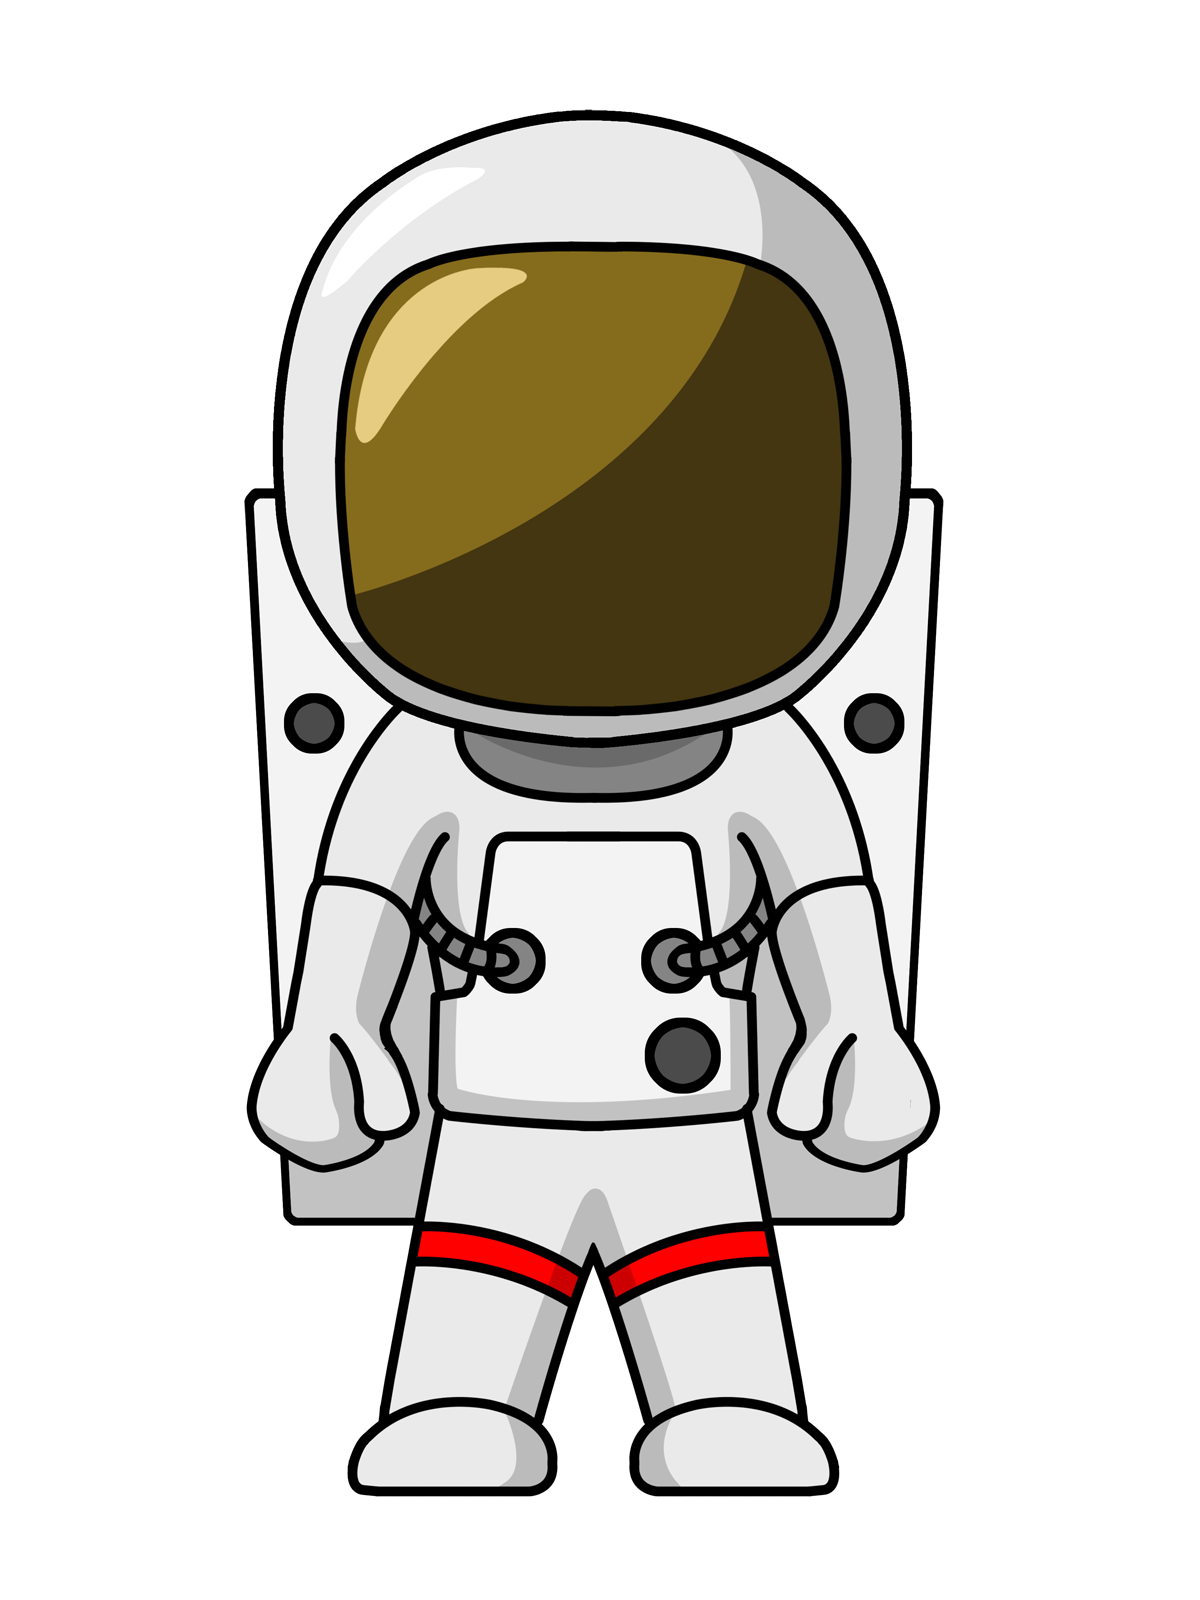 Astronaut clip art images. Ufo clipart simple cartoon